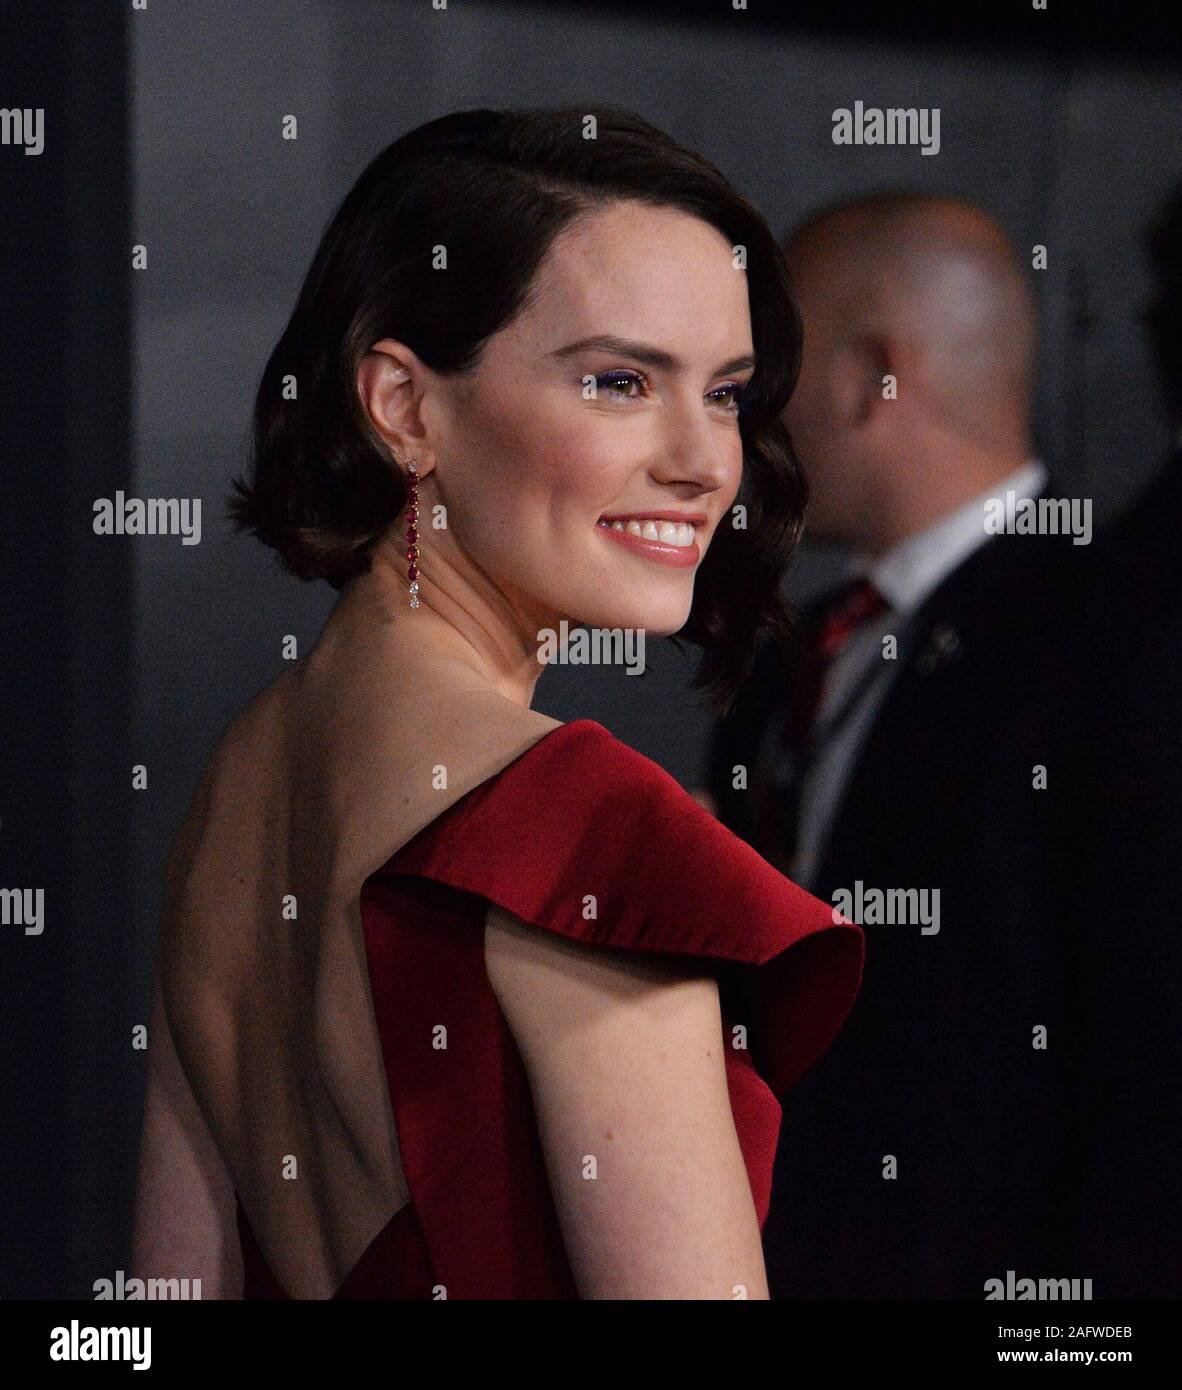 Los Angeles United States 17th Dec 2019 Cast Member Daisy Ridley Attends The Premiere The Motion Picture Sci Fi Fantasy Star Wars The Rise Of Skywalker At The Tcl Chinese Theatre In The